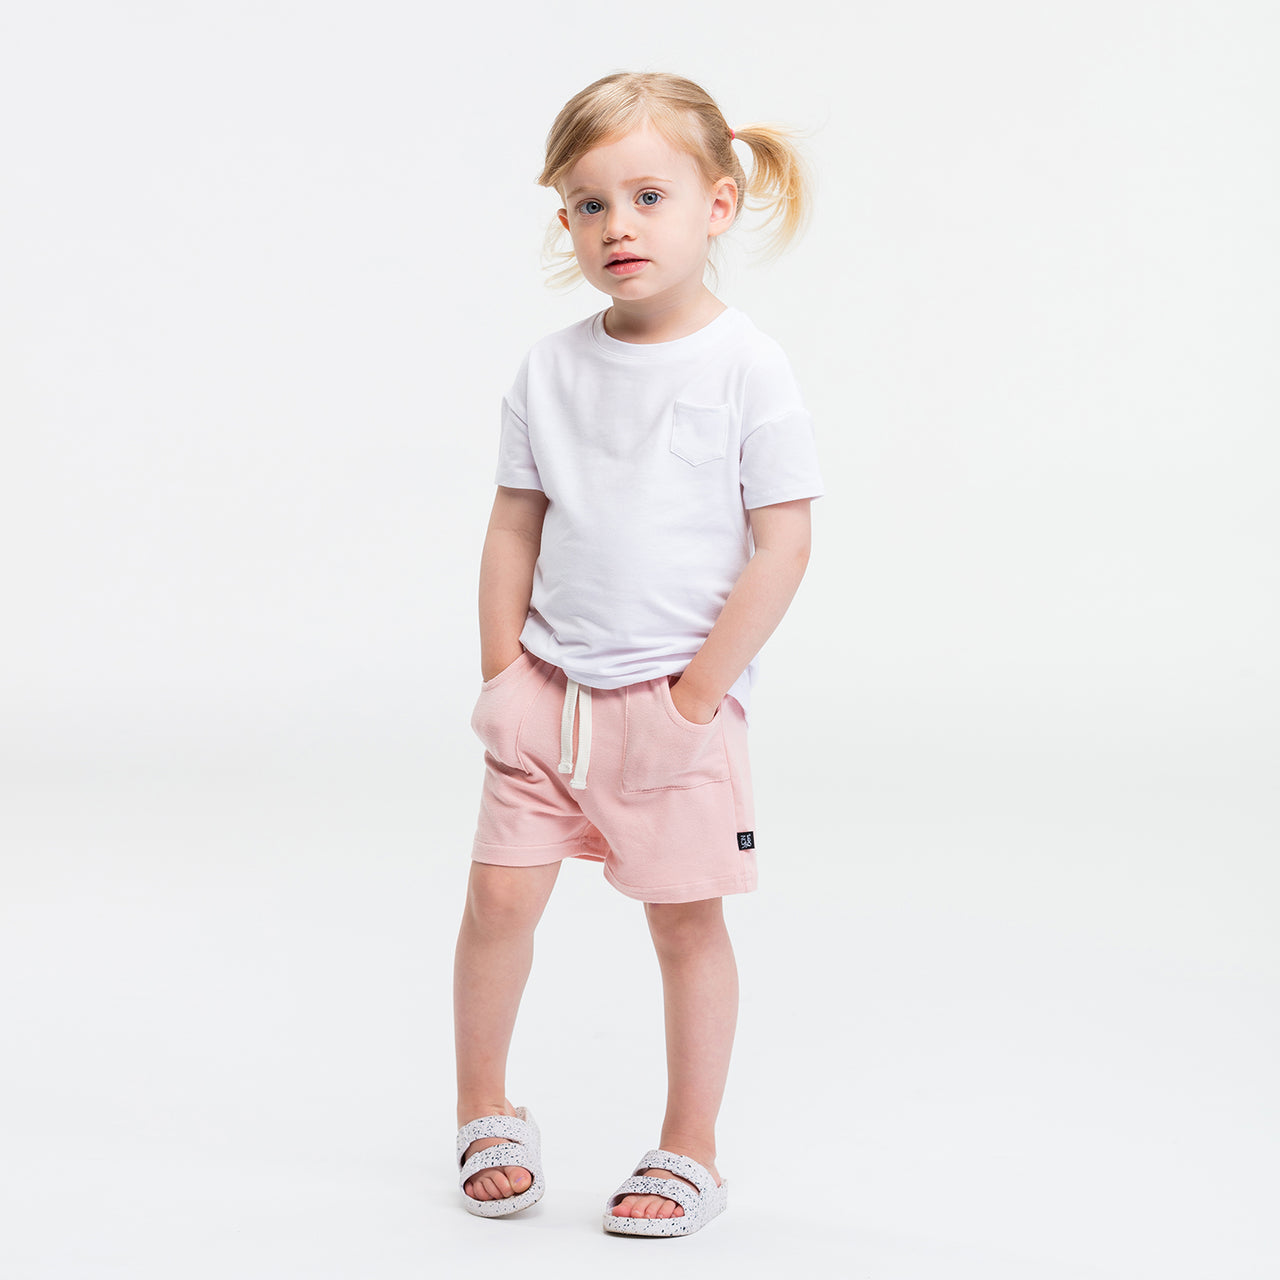 Vonbon organic baby clothes kids clothes and gifts for babies just add sunshine negle Images